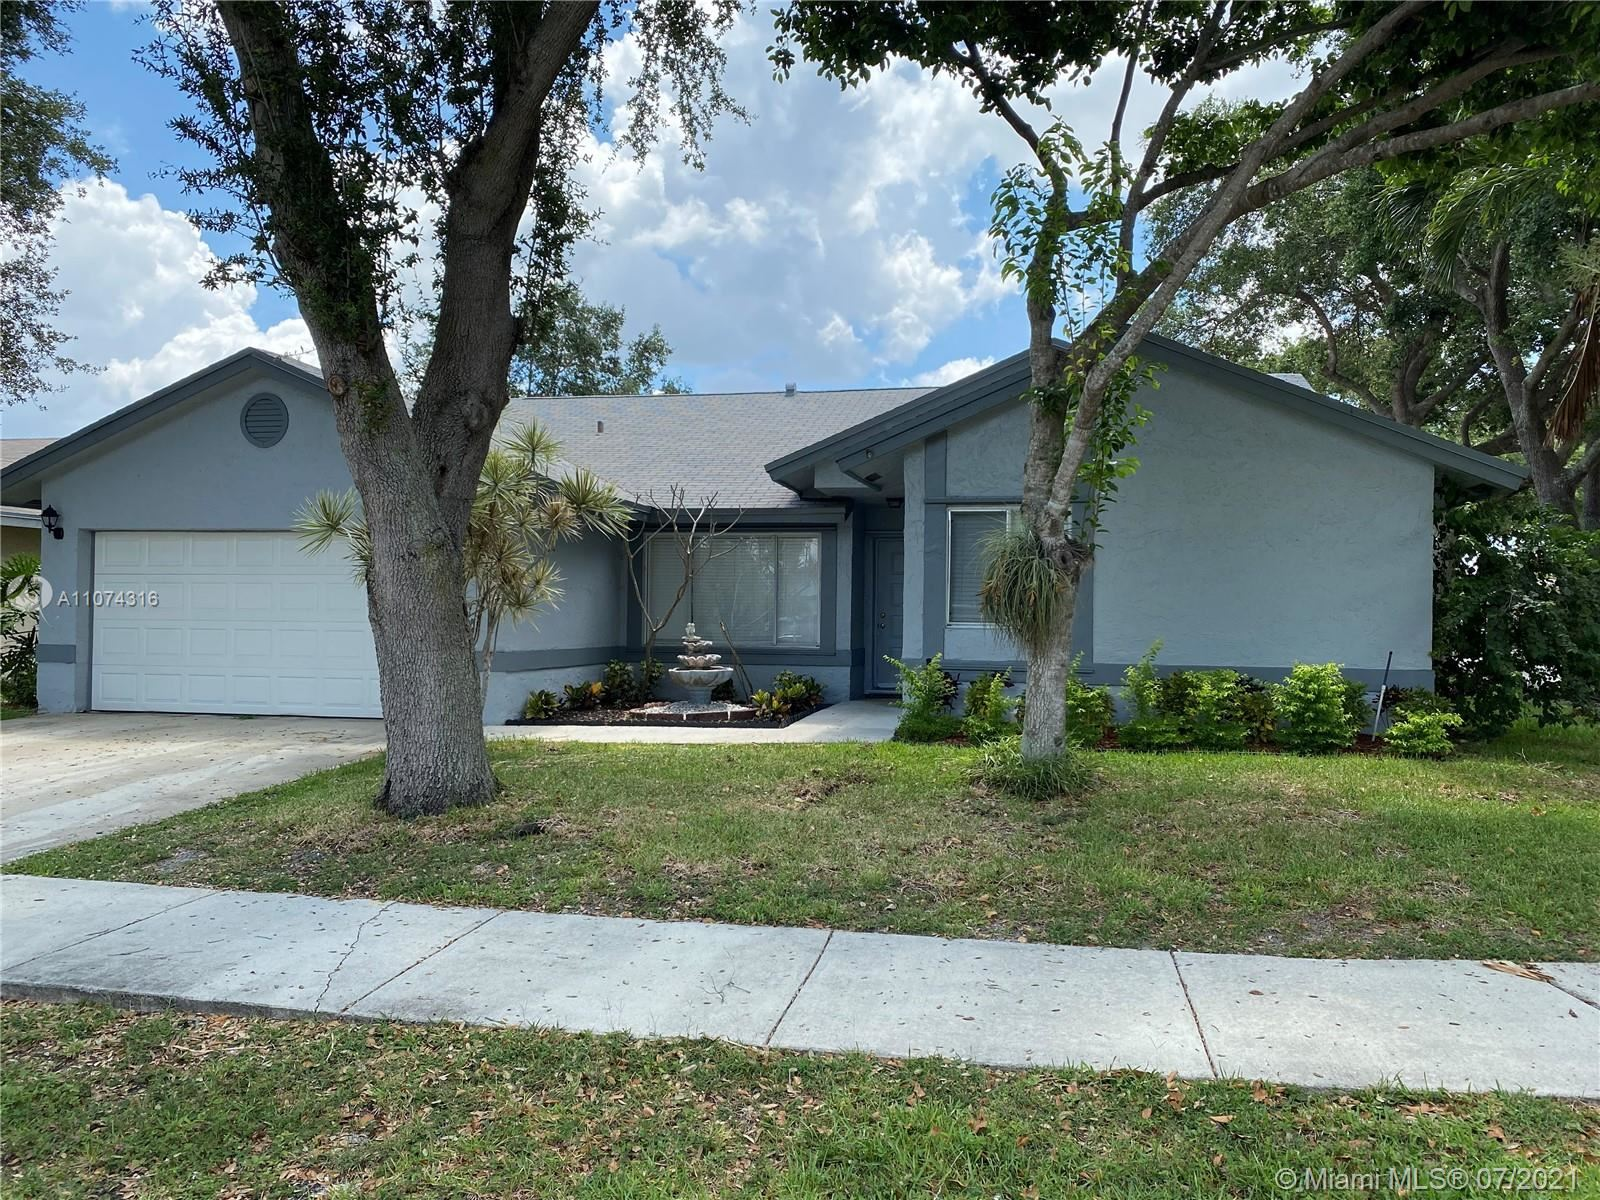 Photo of 5800 NW 37th Ave, Coconut Creek, FL 33073 (MLS # A11074316)